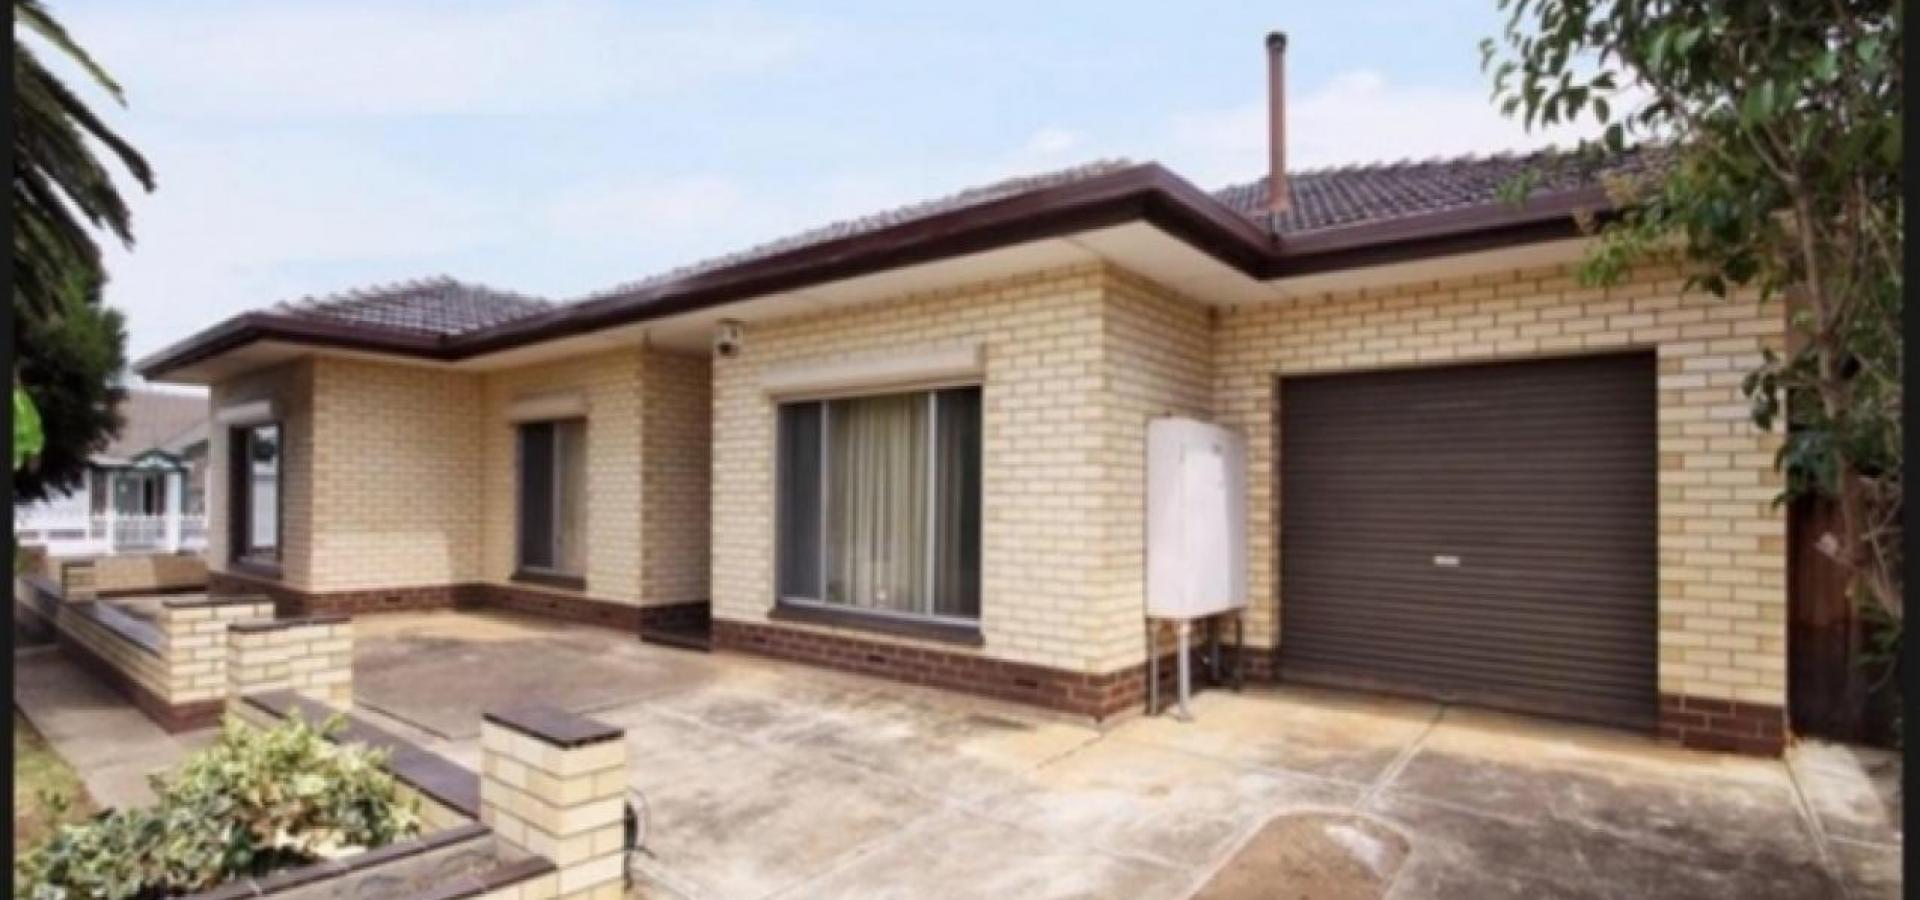 SOLID BRICK  FAMILY HOME